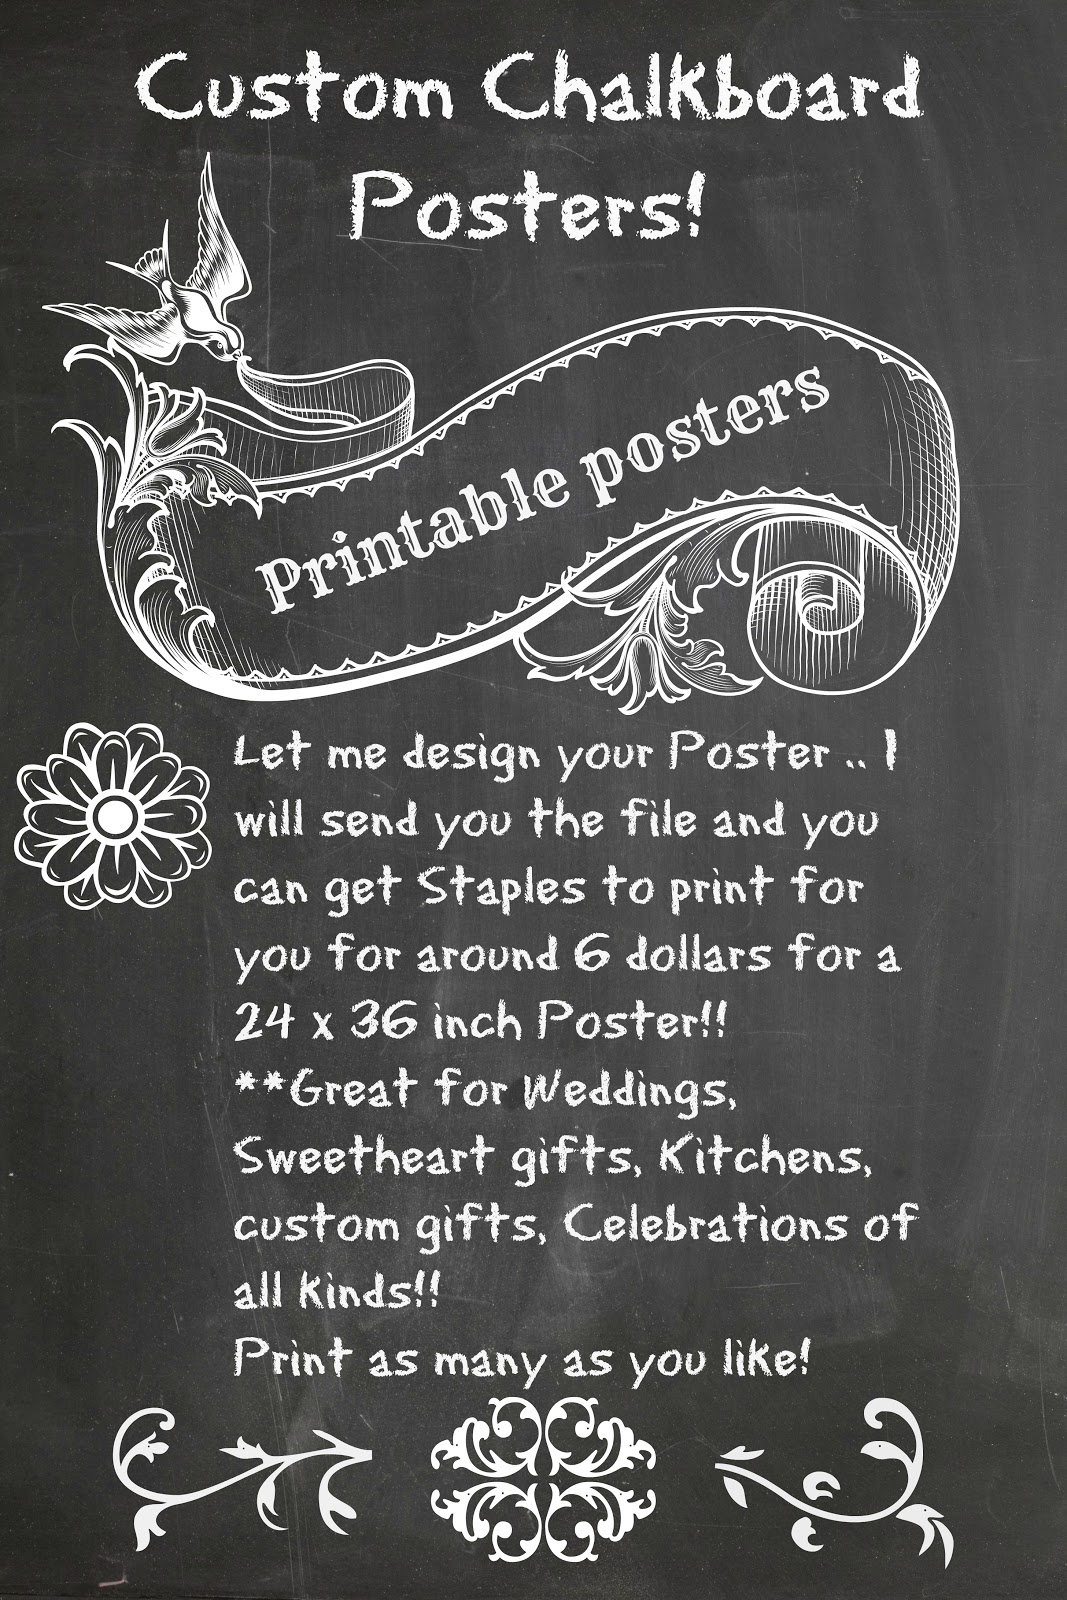 Poster design staples - Custom Created Chalkboard Posters Just For You Great Large Format Chalkboard Posters Just Send Me Your Info And I Will Design A Poster Especially For You